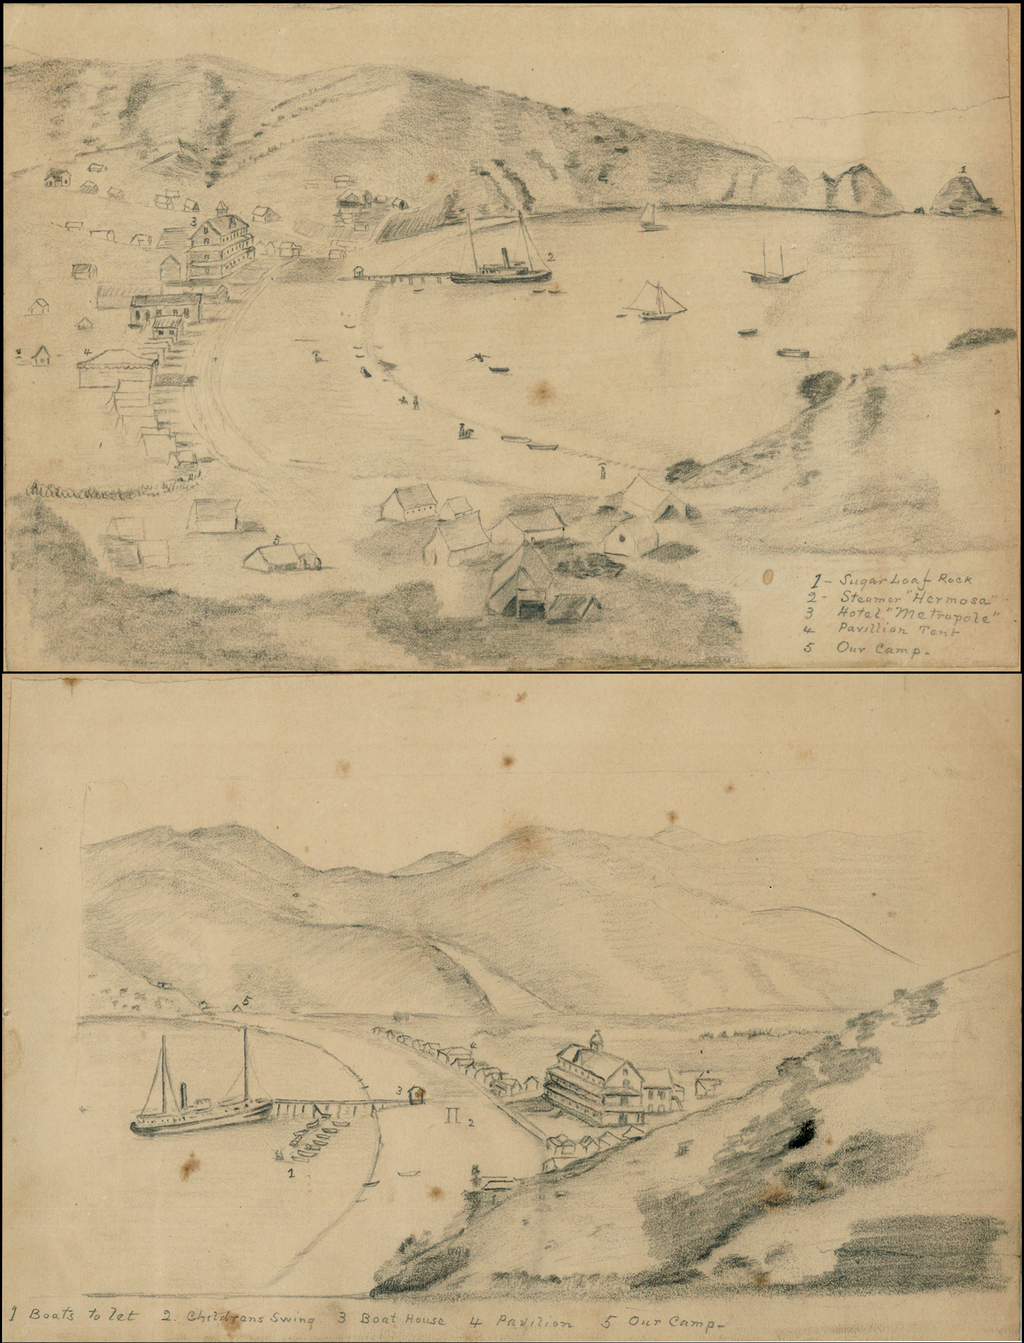 2 Pencil Sketches of Avalon, Catalina Island, California By Anonymous